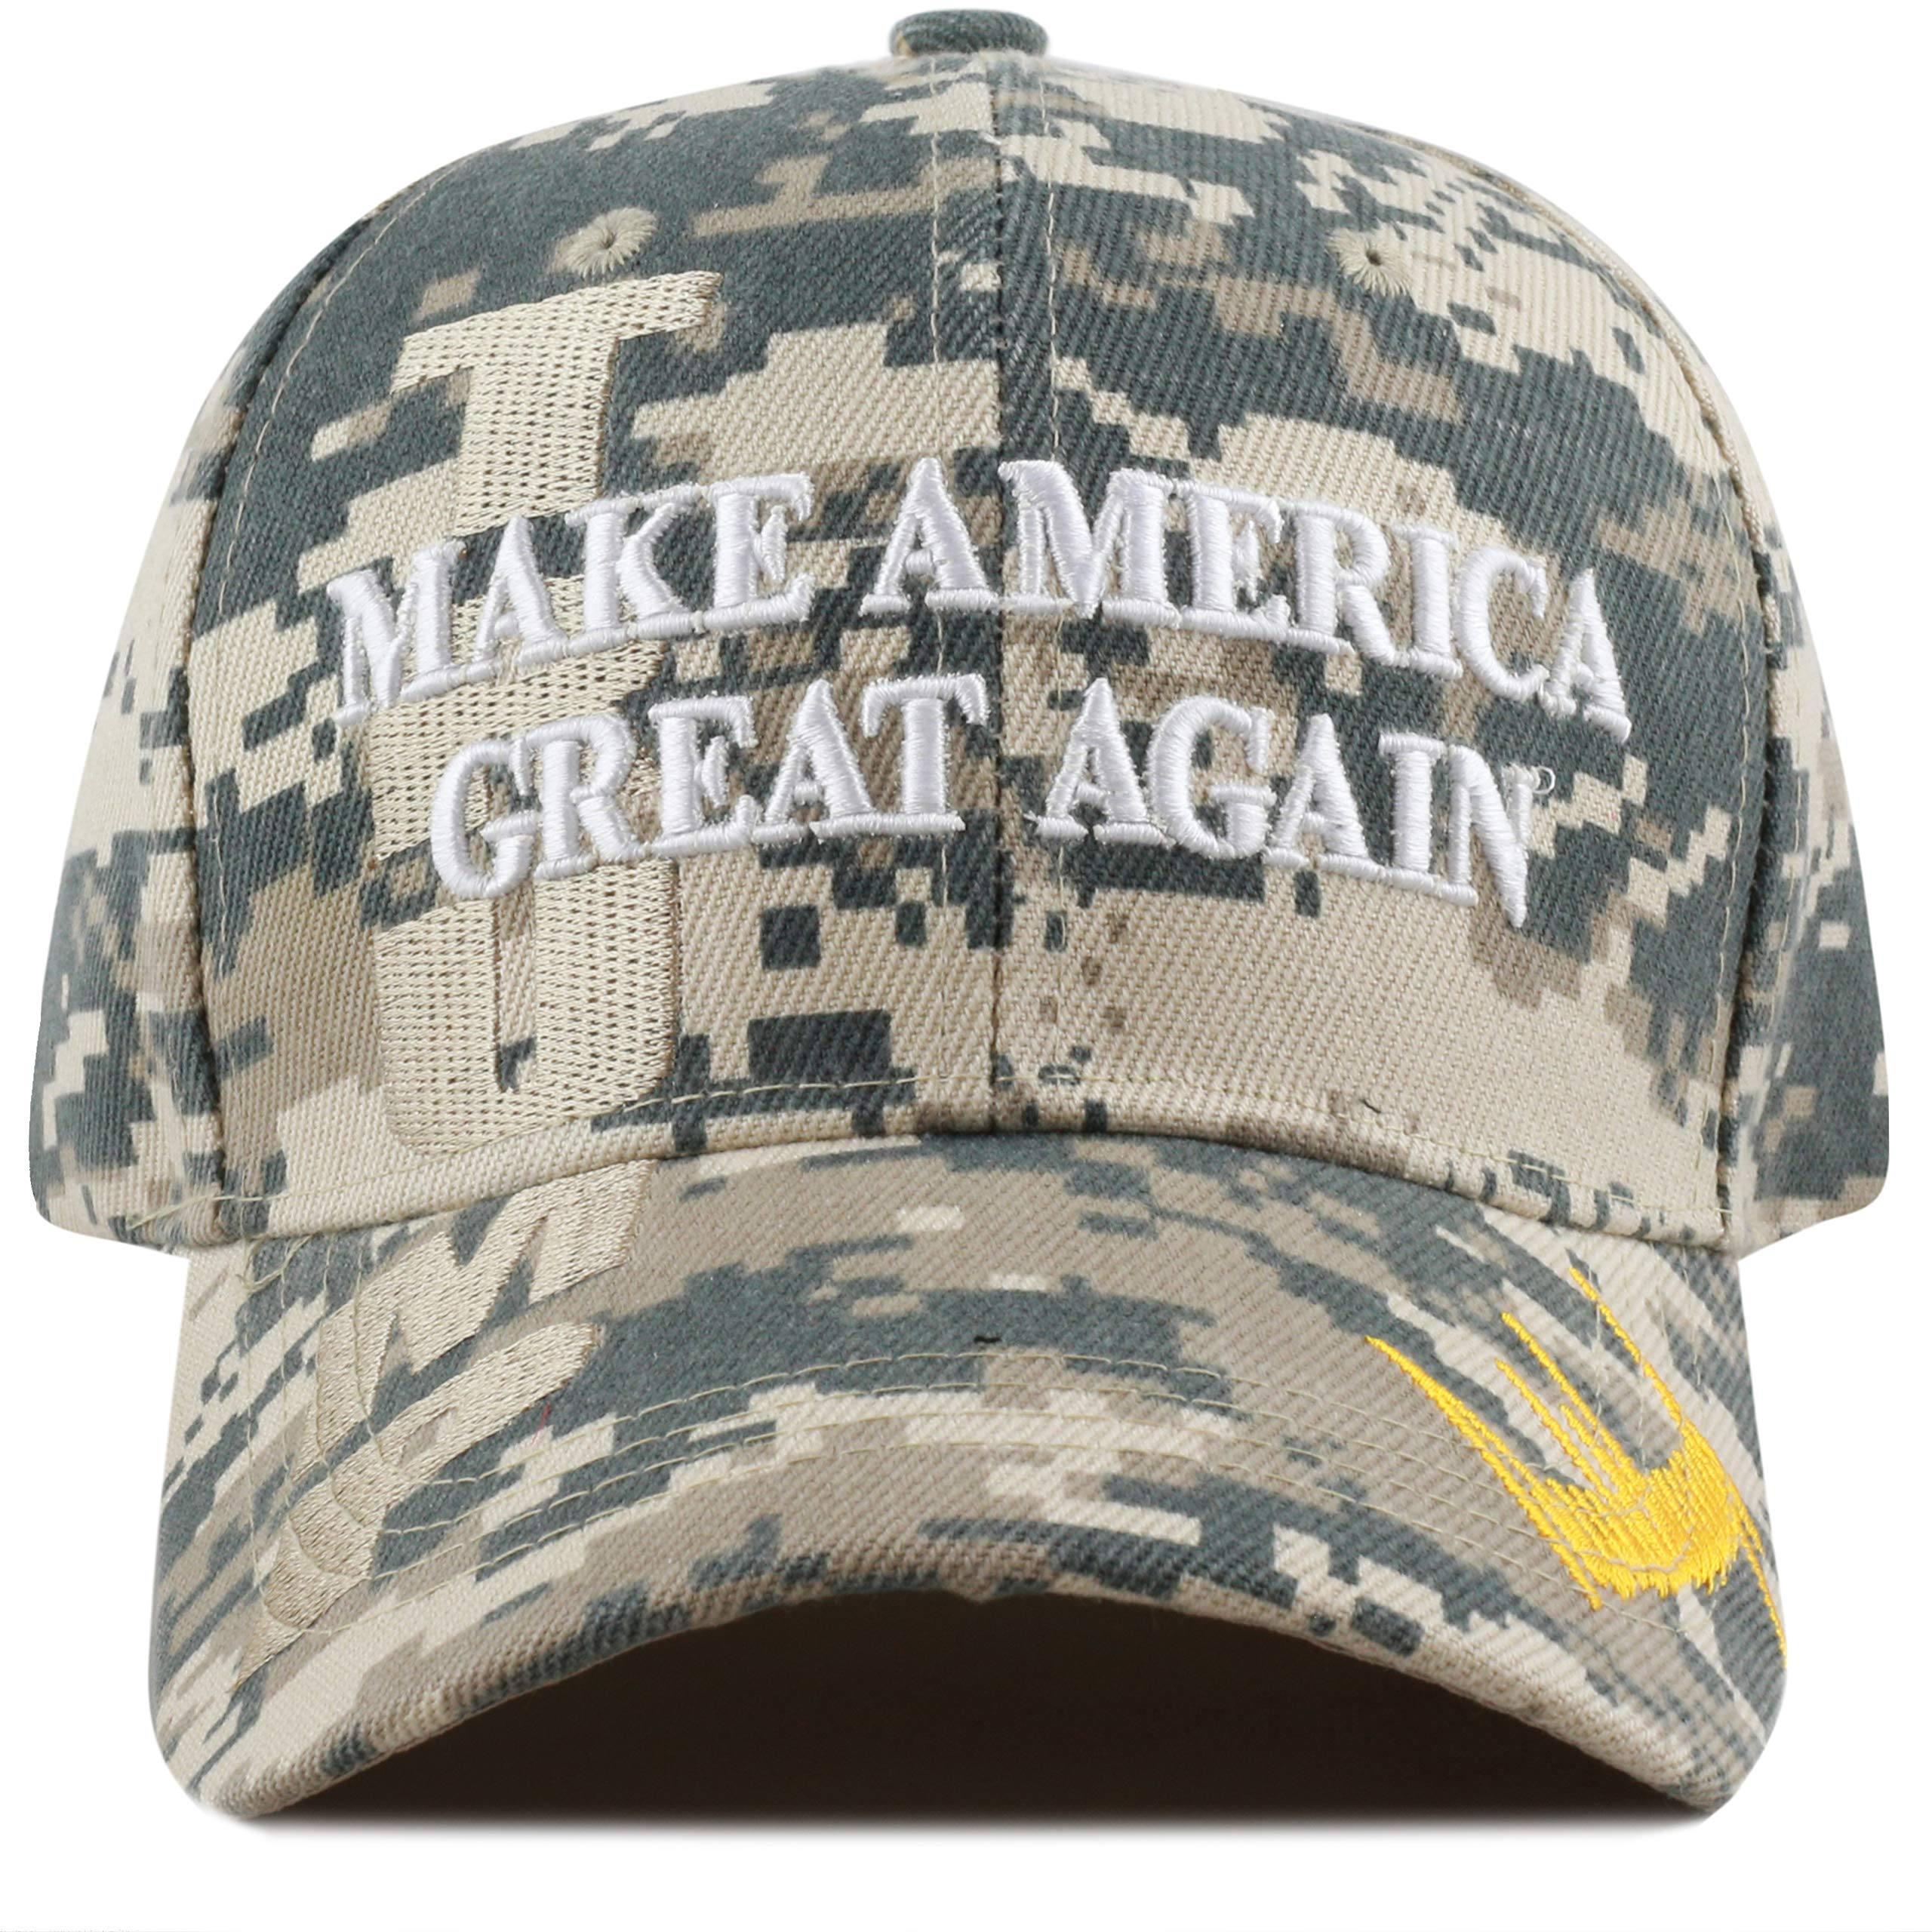 09c56d5d7 THE HAT DEPOT Exclusive Donald Trump Slogan Keep America Great/Make America  Great Again 3D